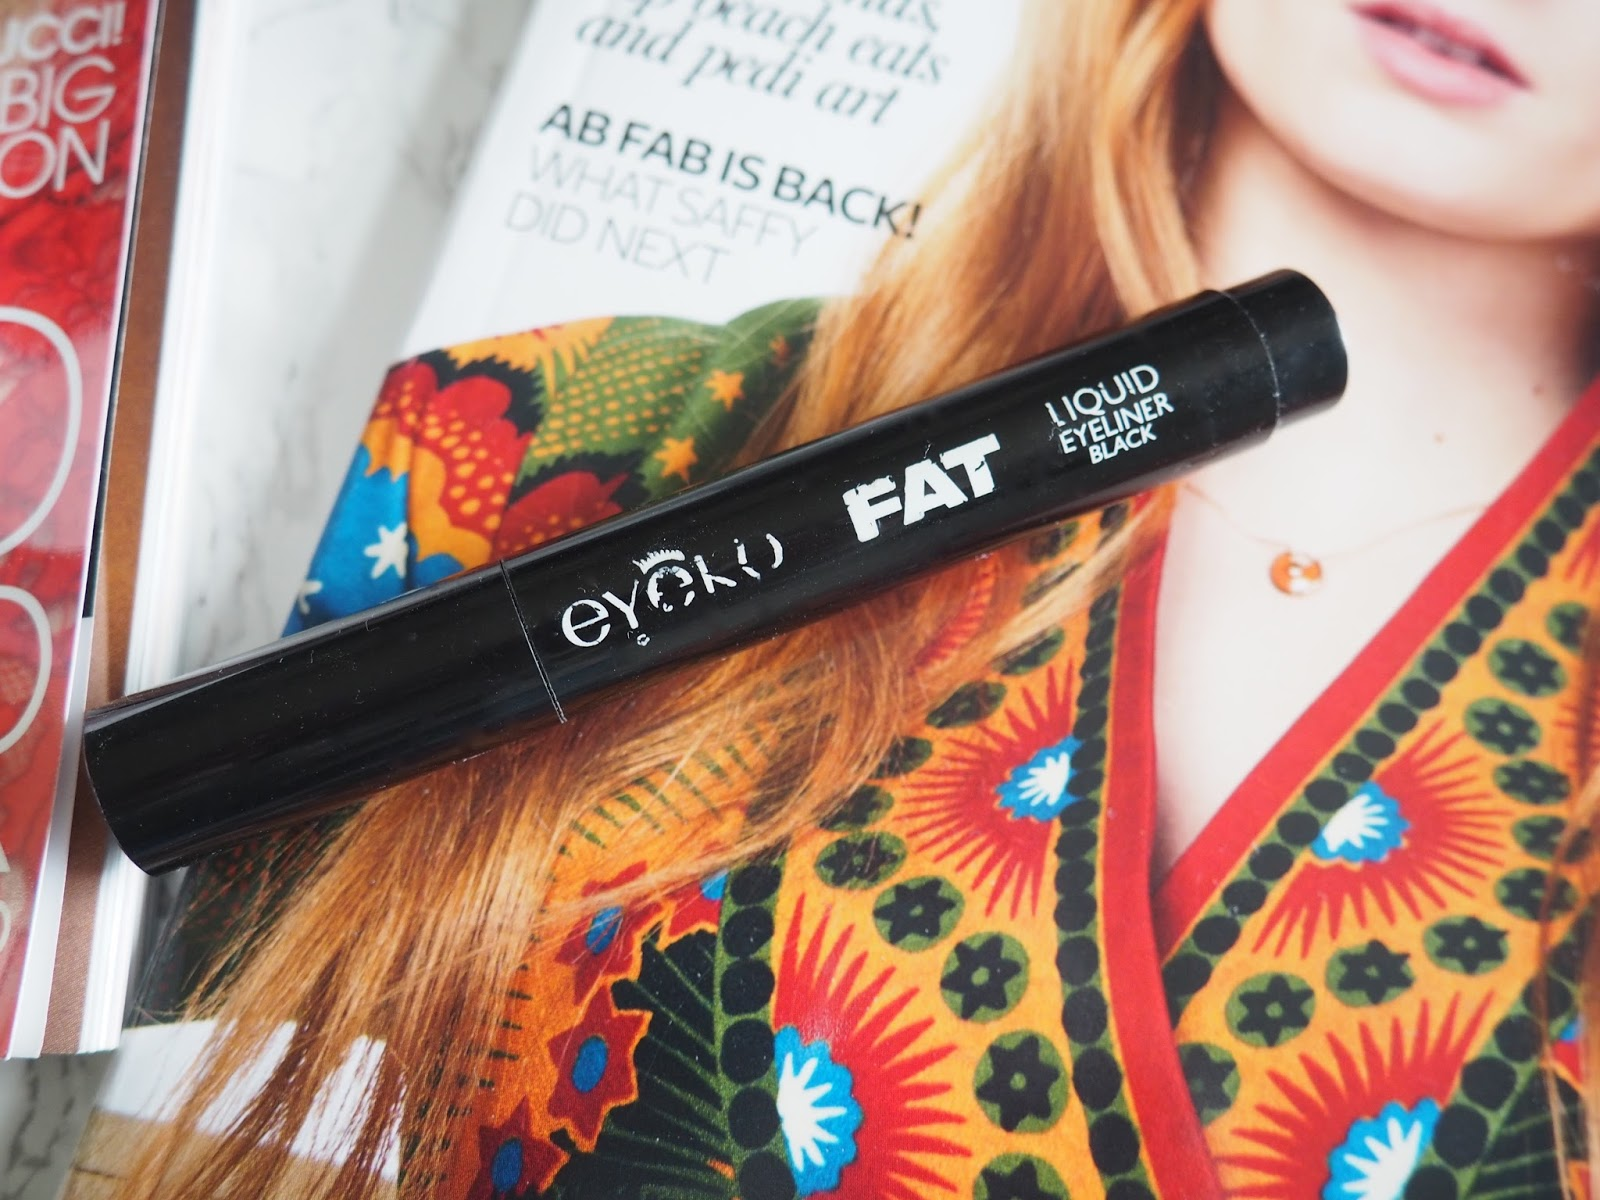 Instyle Eyeko fat liquid eyeliner eyes makeup